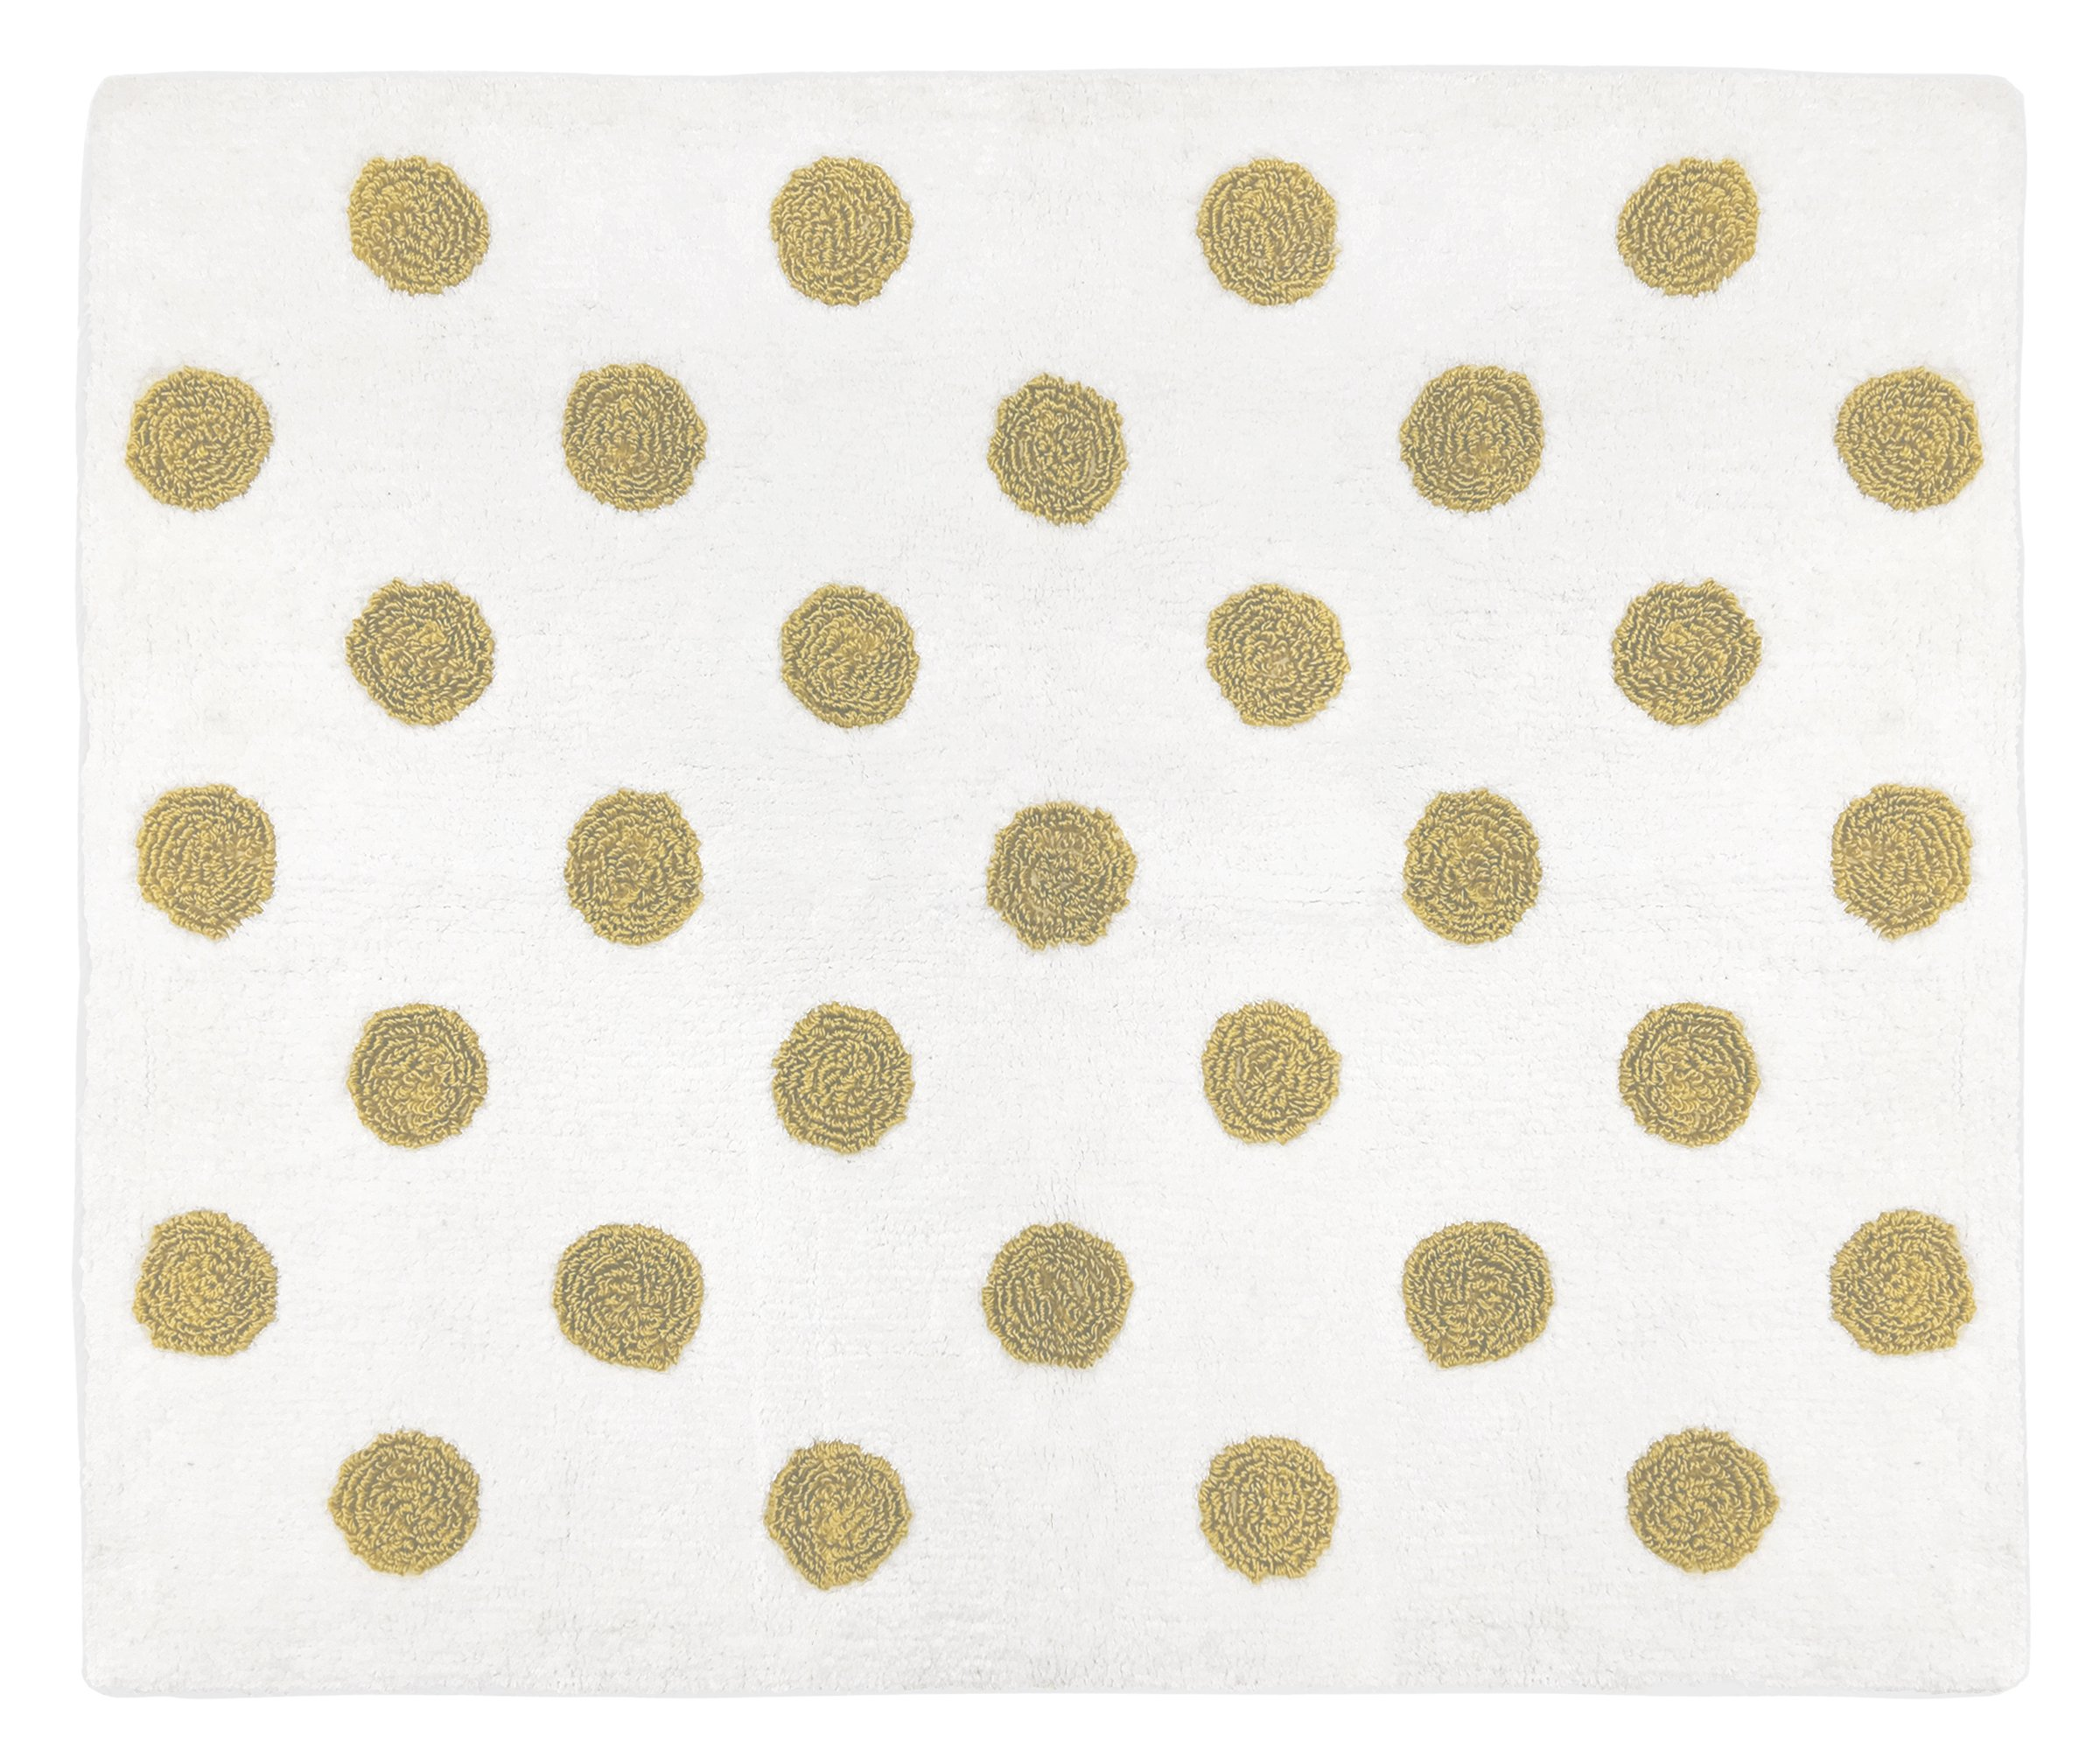 Sweet JoJo Designs Gold and White Polka Dot Accent Floor Rug Or Bath Mat for Peach Watercolor Floral Collection